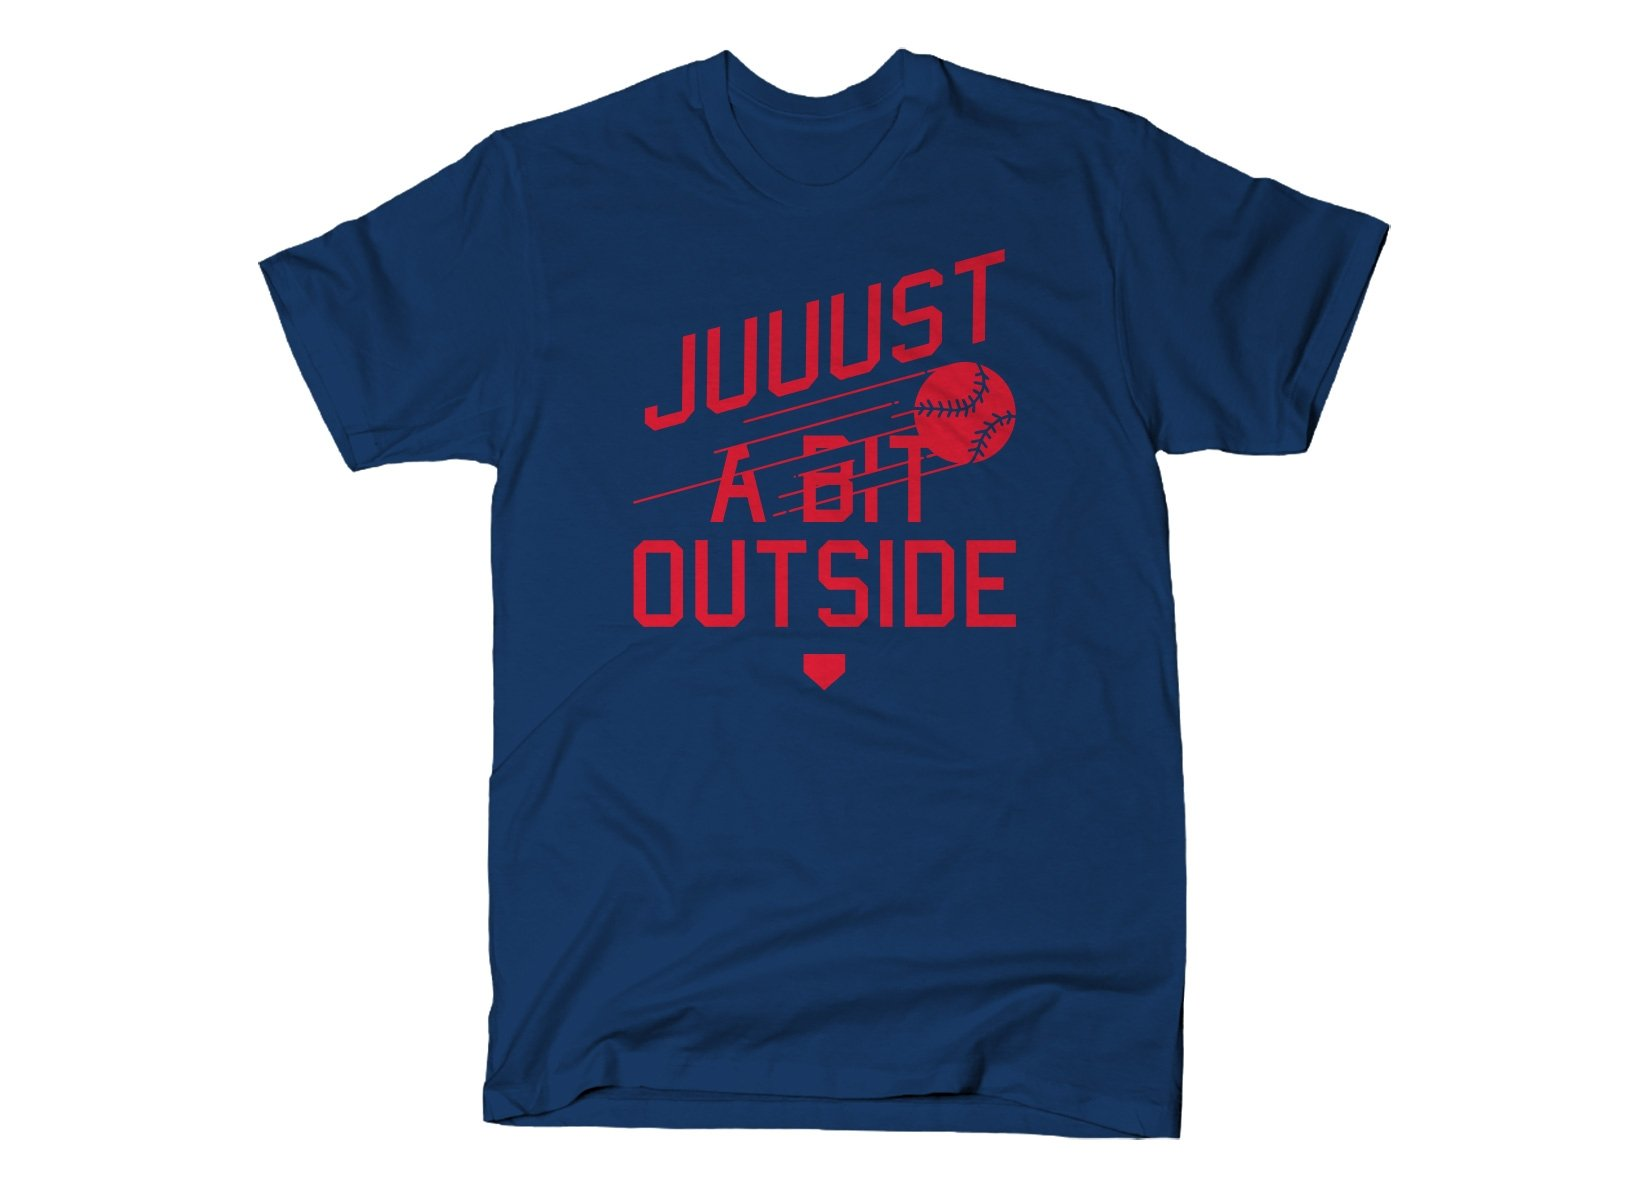 Just A Bit Outside on Mens T-Shirt